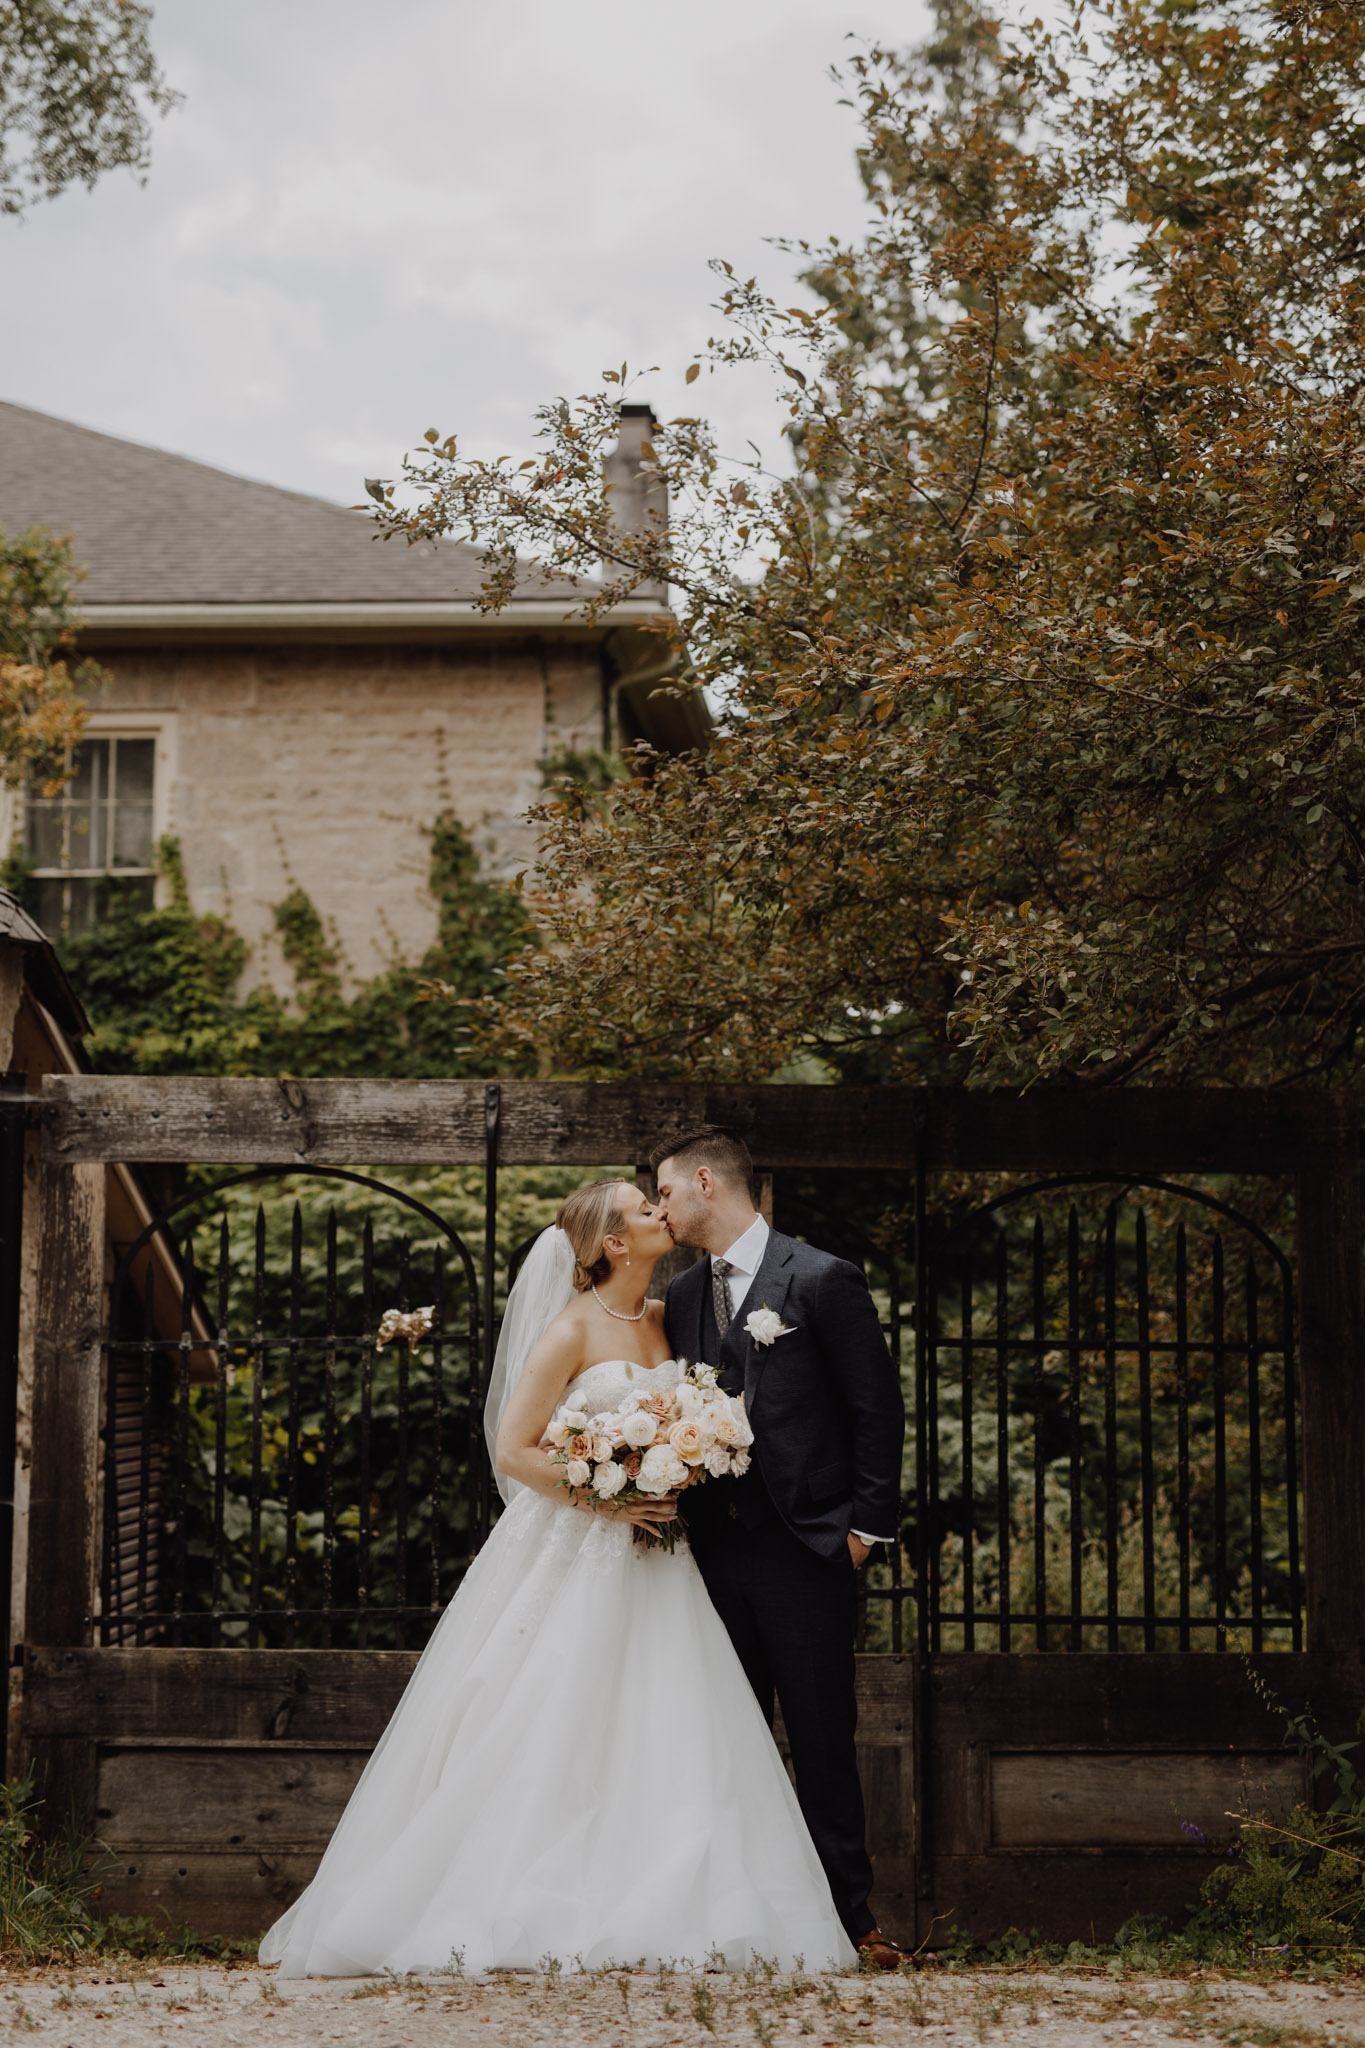 Elora Mill Wedding - bride and groom kiss by the gate